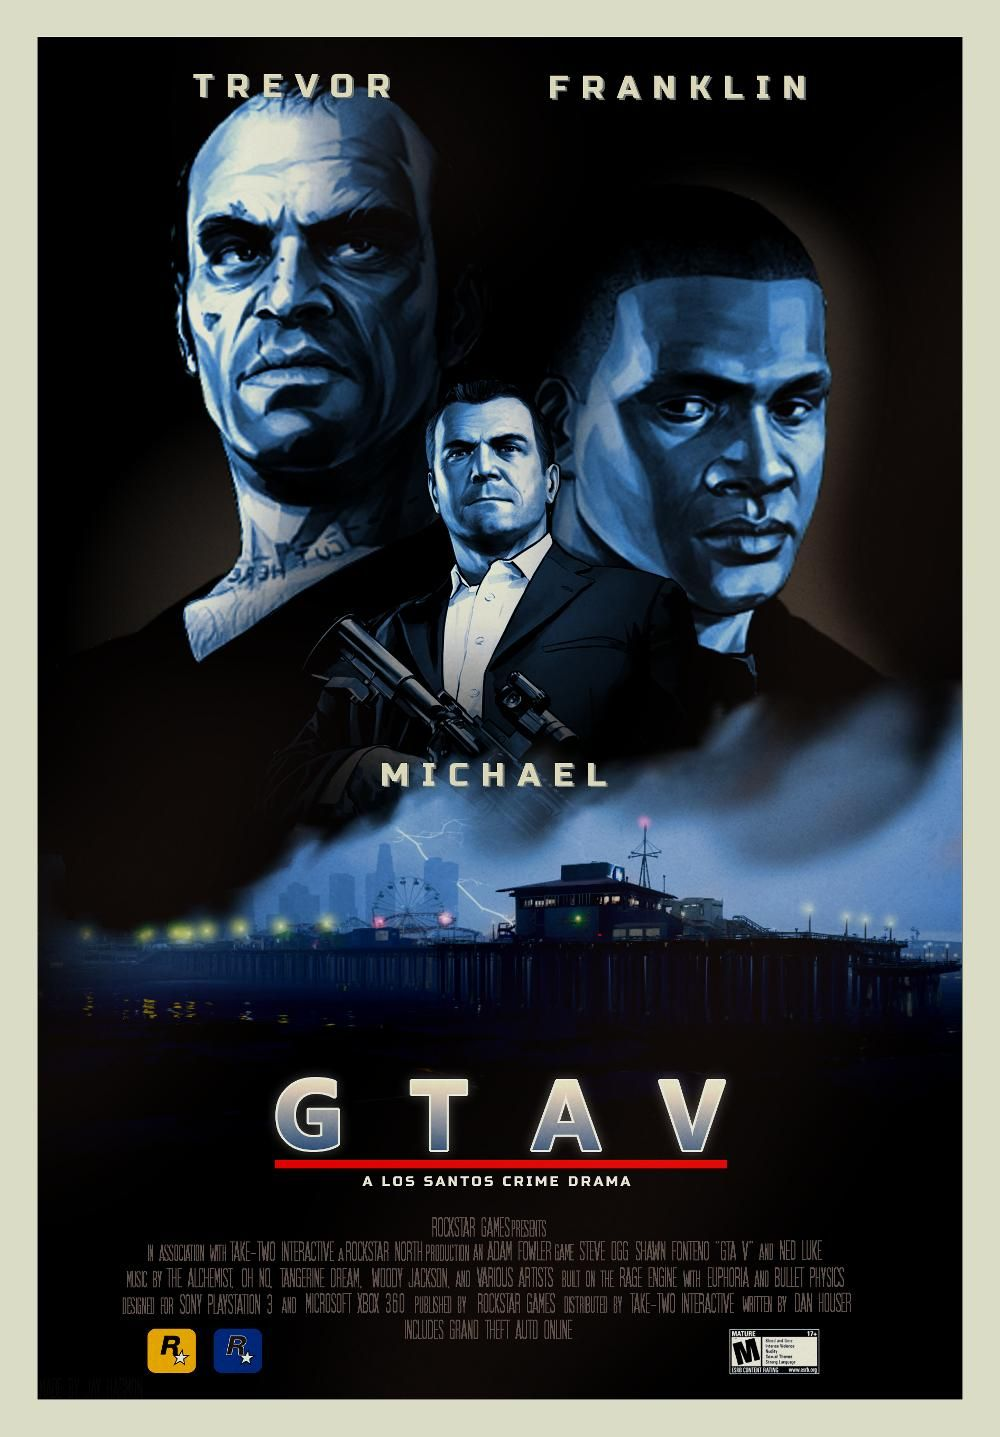 Gta V The Movie Gta Grand Theft Auto Series Grand Theft Auto Artwork